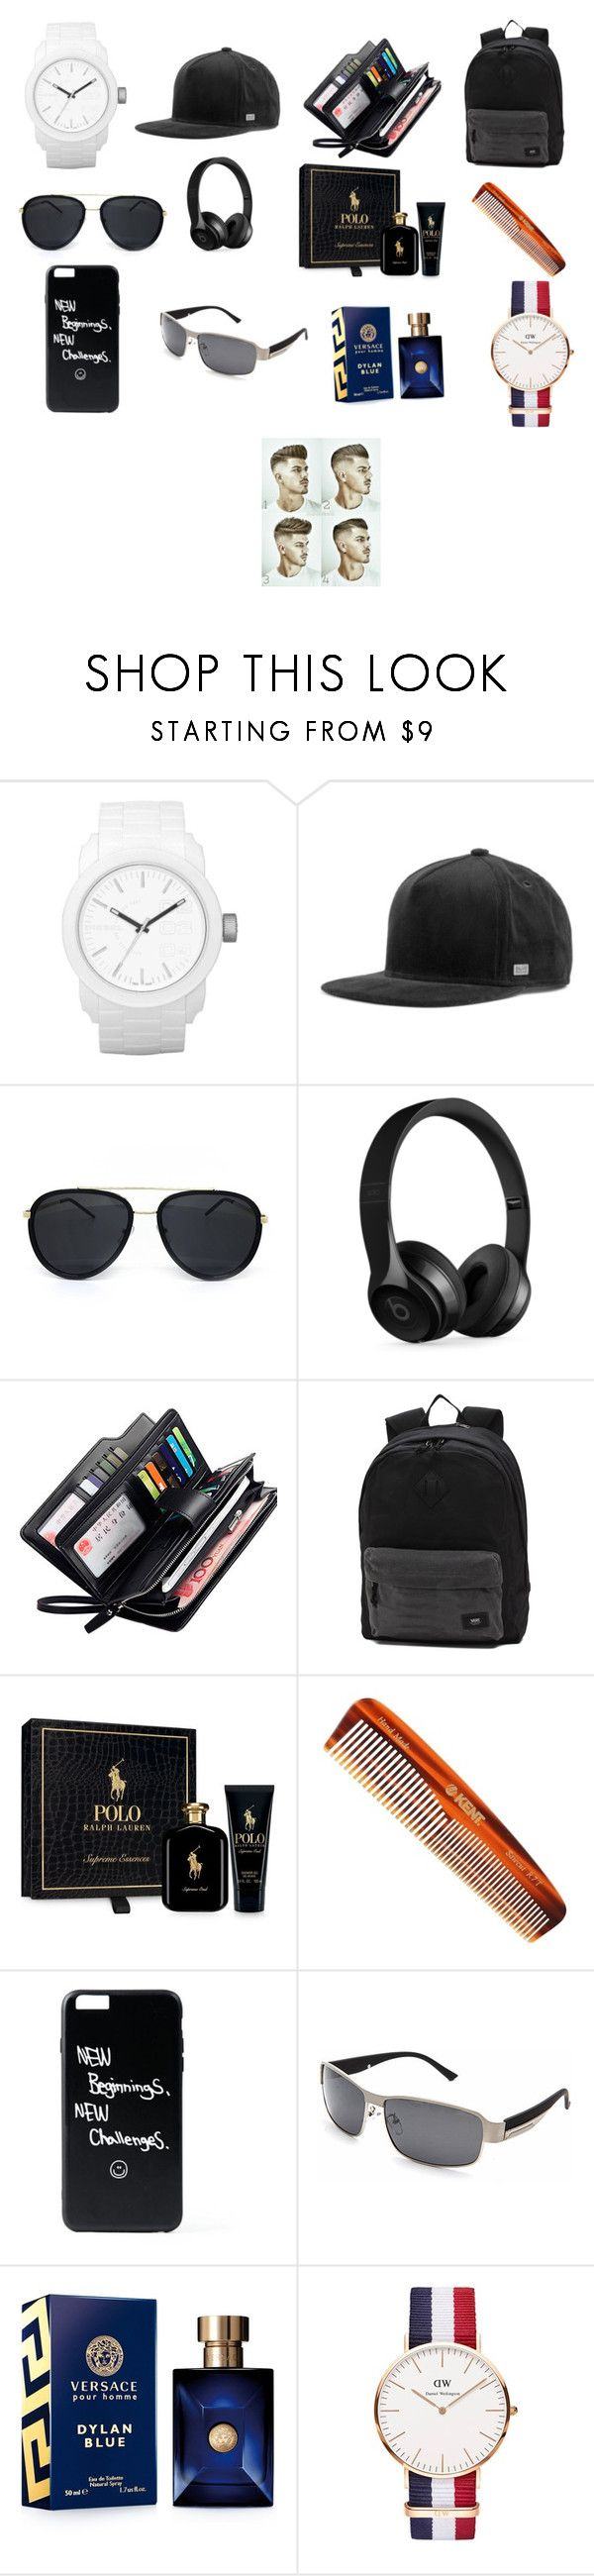 """""""The 2 day vacation part two men gifts"""" by mumtajcooper ❤ liked on Polyvore featuring Diesel, MELIN, Beats by Dr. Dre, Vans, Ralph Lauren, Kent, Versace, Daniel Wellington, men's fashion and menswear"""